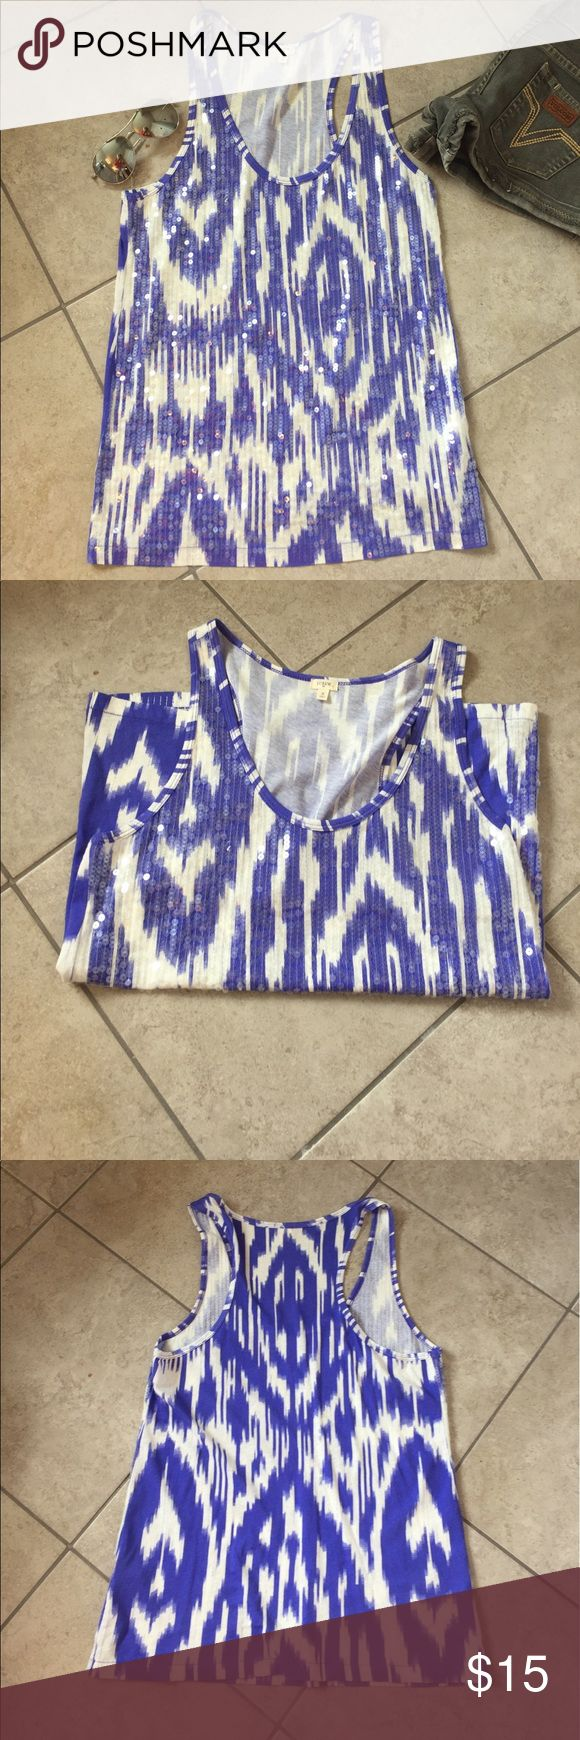 J. Crew Factory purple Ikat sequin tank top Beautiful Ikat-patterned tank top. Purple (blue-purple) ikat pattern with sequins on the front. Size S. J. Crew Factory. 100% cotton. J. Crew Factory Tops Tank Tops